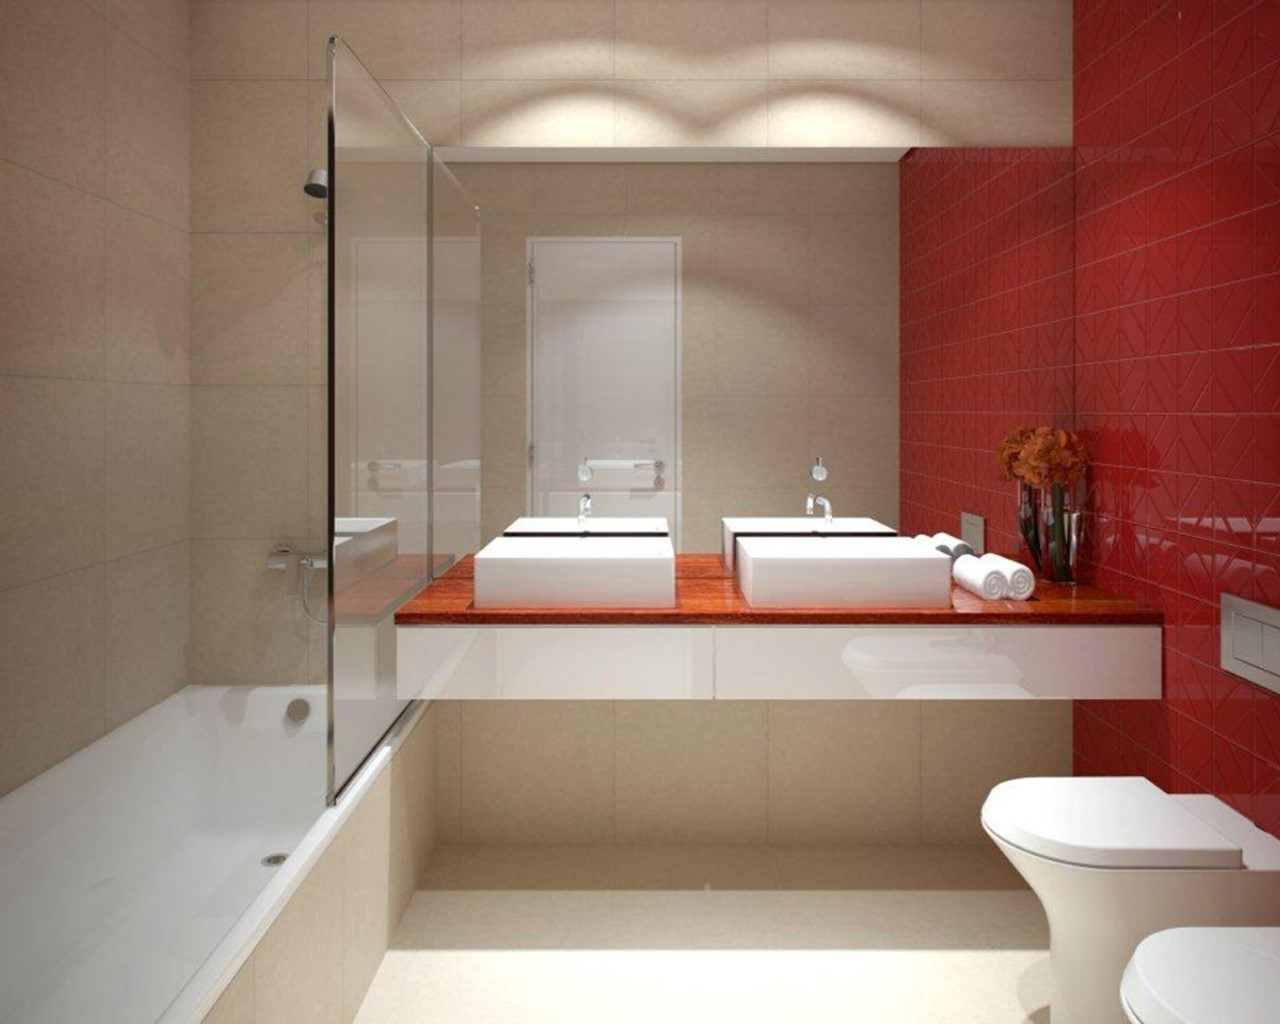 Batroom Red option